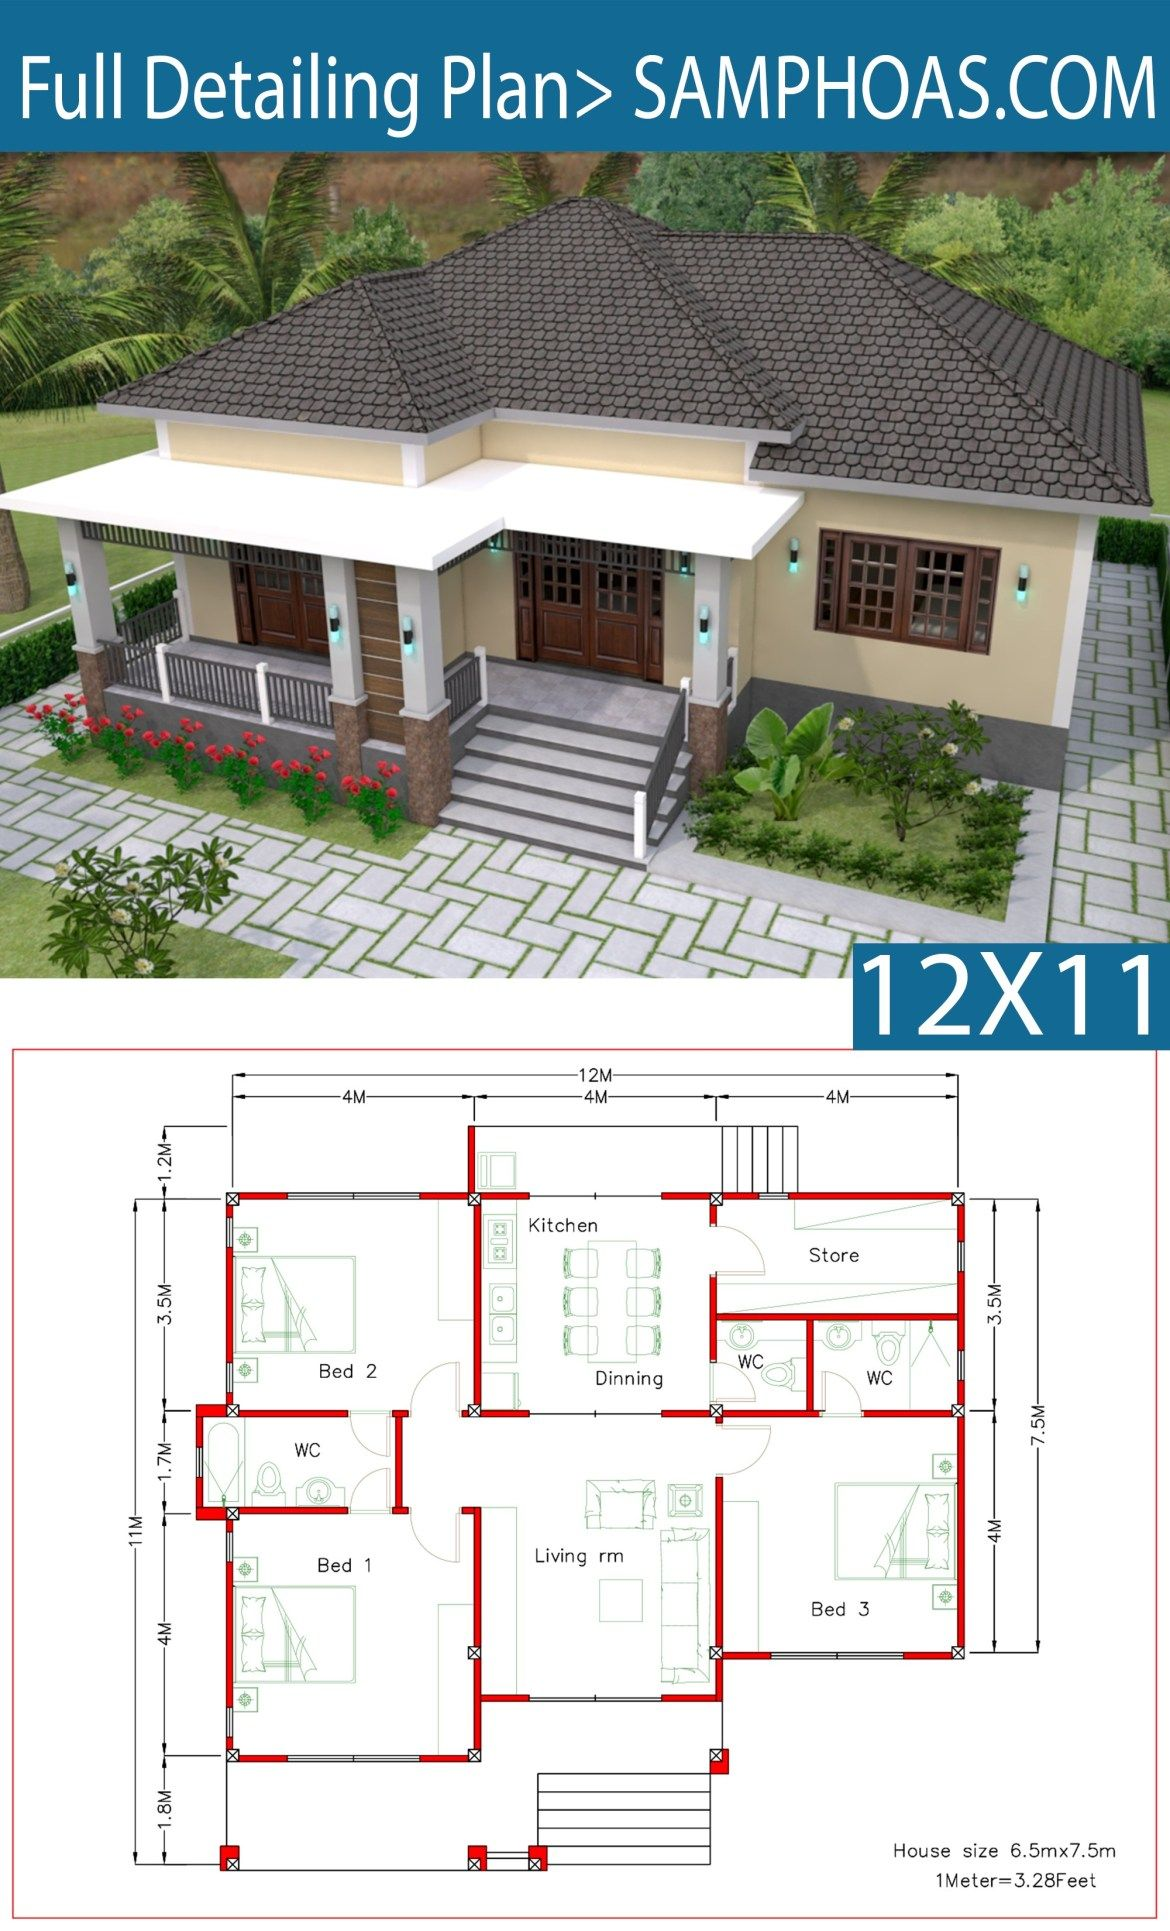 Interior Design Plan 12x11m With Full Plan 3beds Samphoas Plansearch Simple House Design Model House Plan Bungalow House Plans